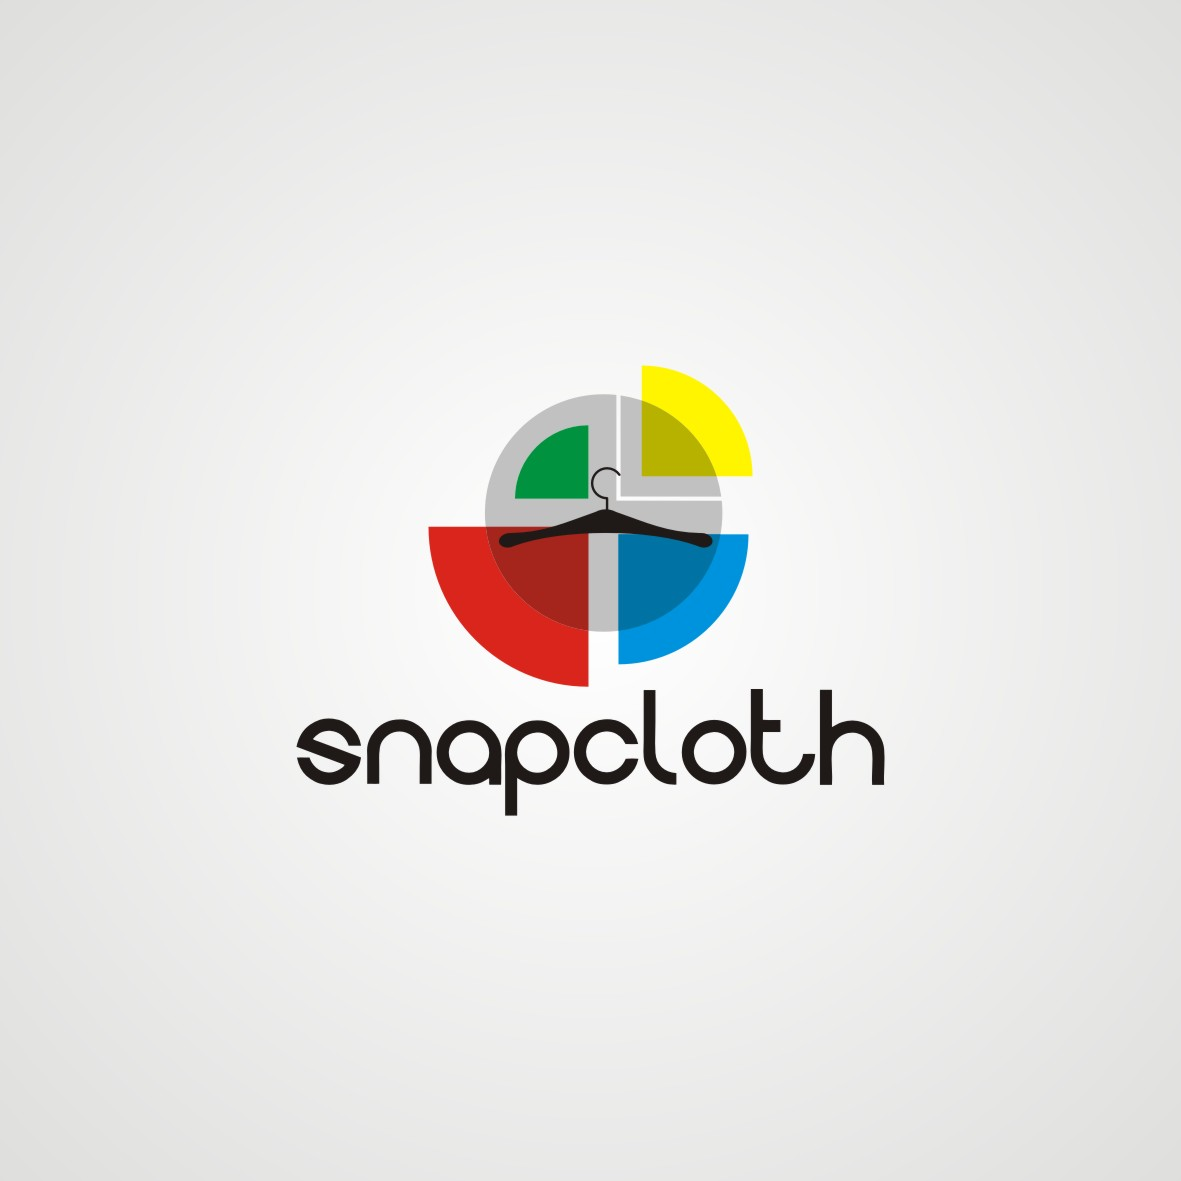 Logo Design by arteo_design - Entry No. 72 in the Logo Design Contest Snapcloth Logo Design.